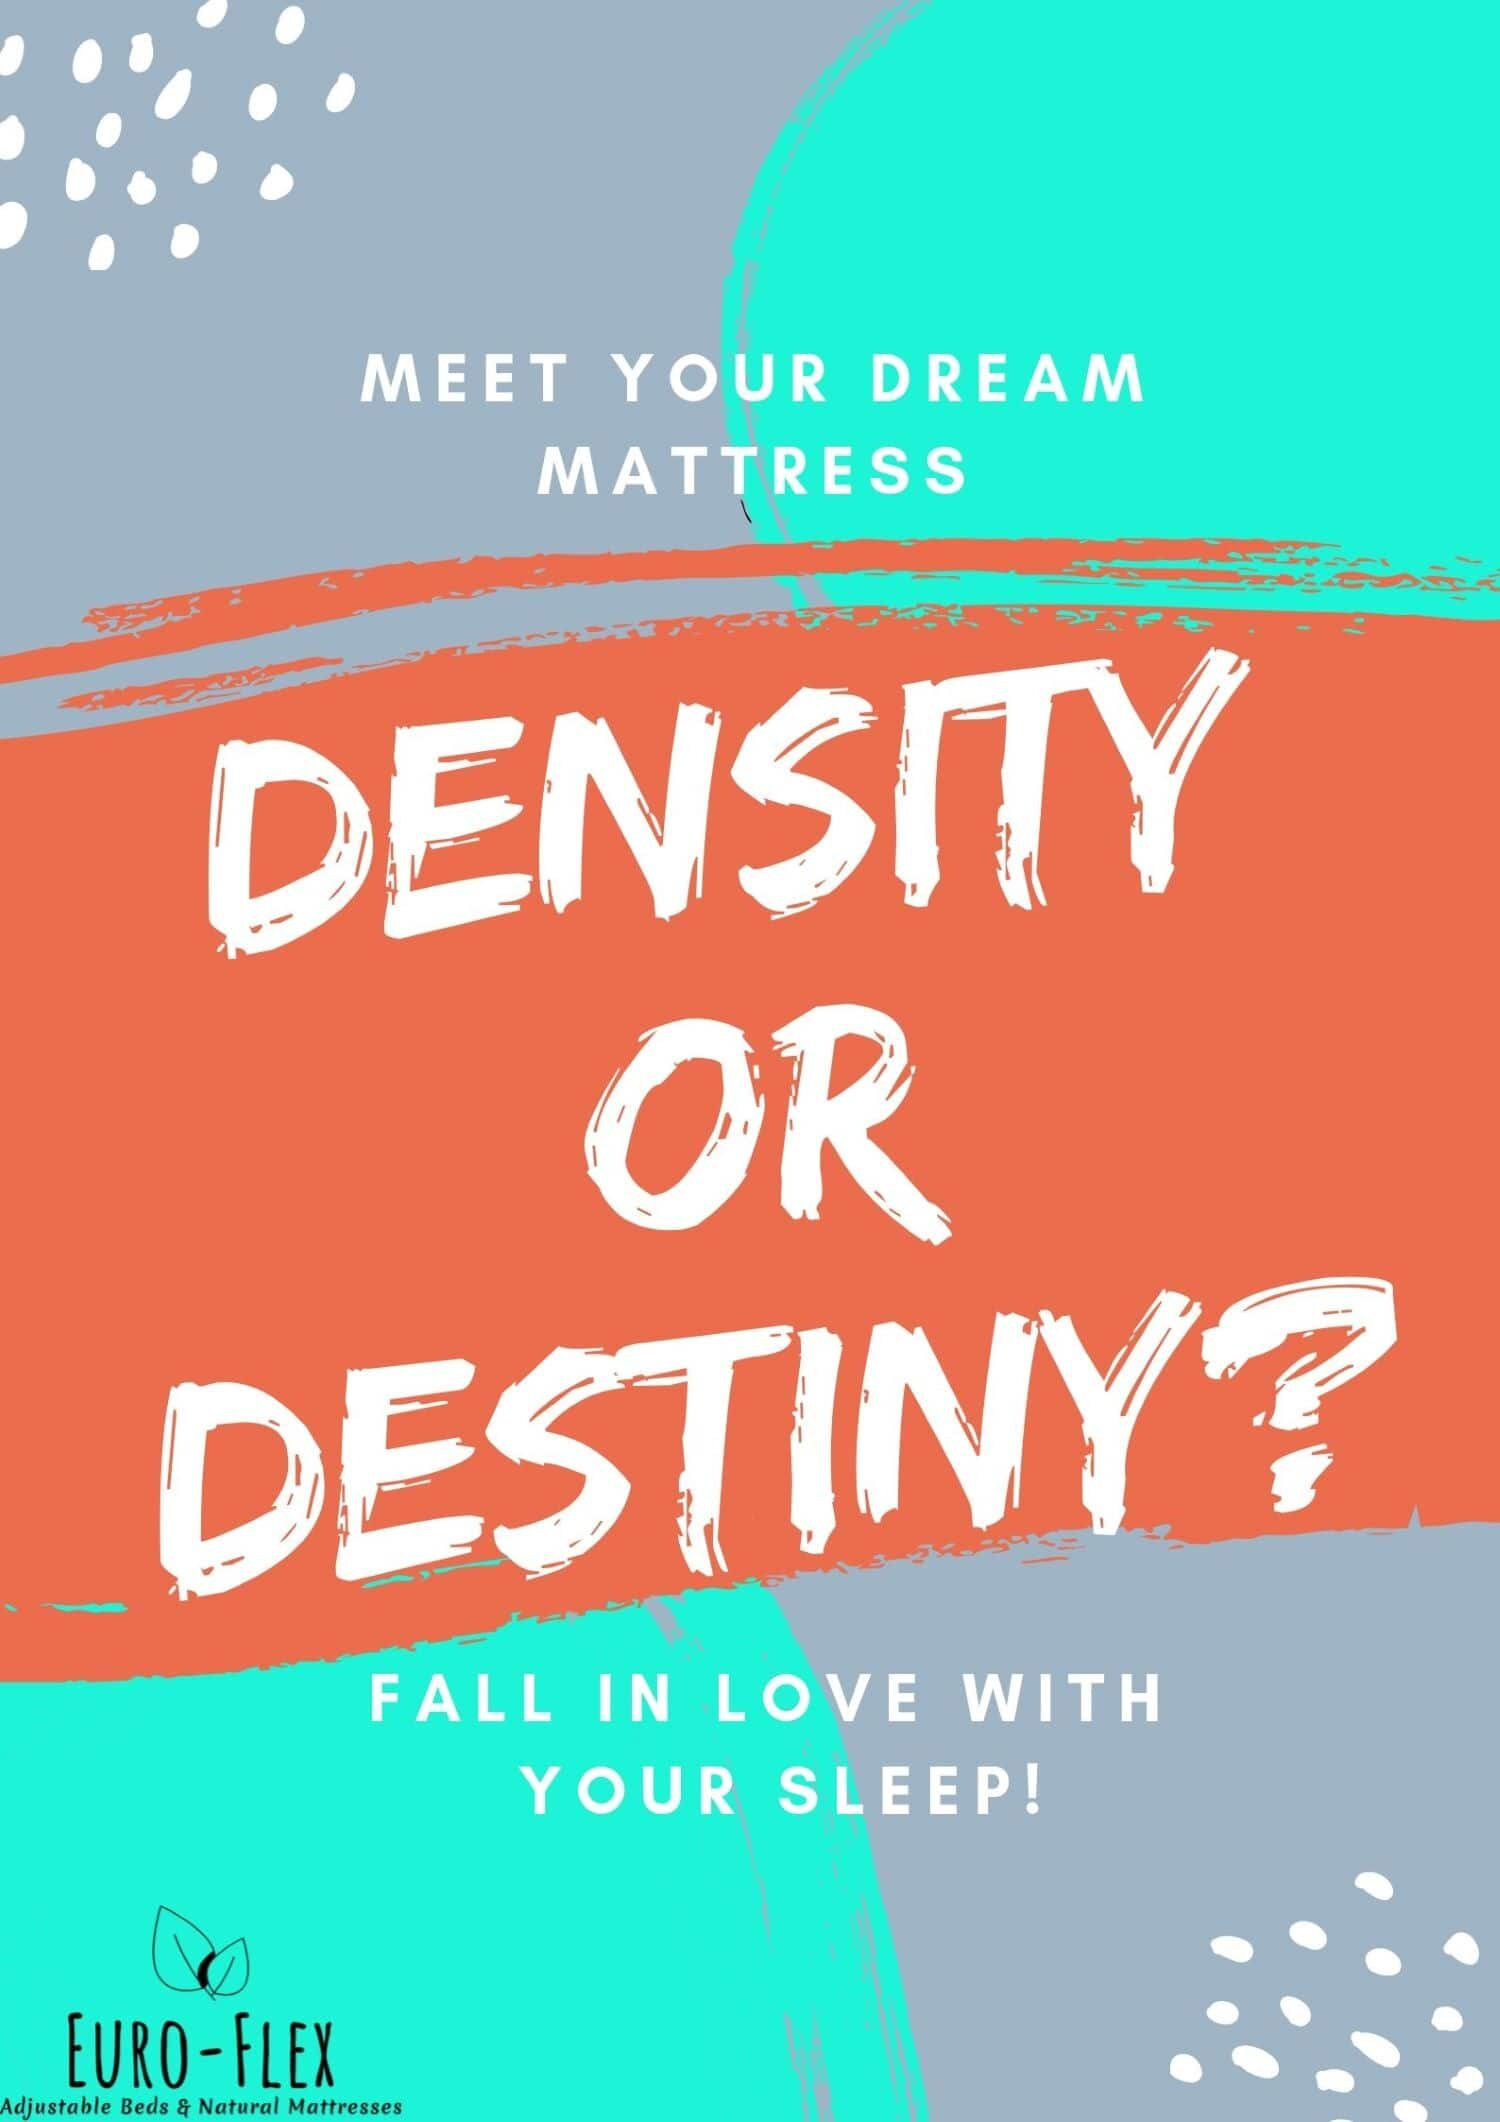 Density or destiny?